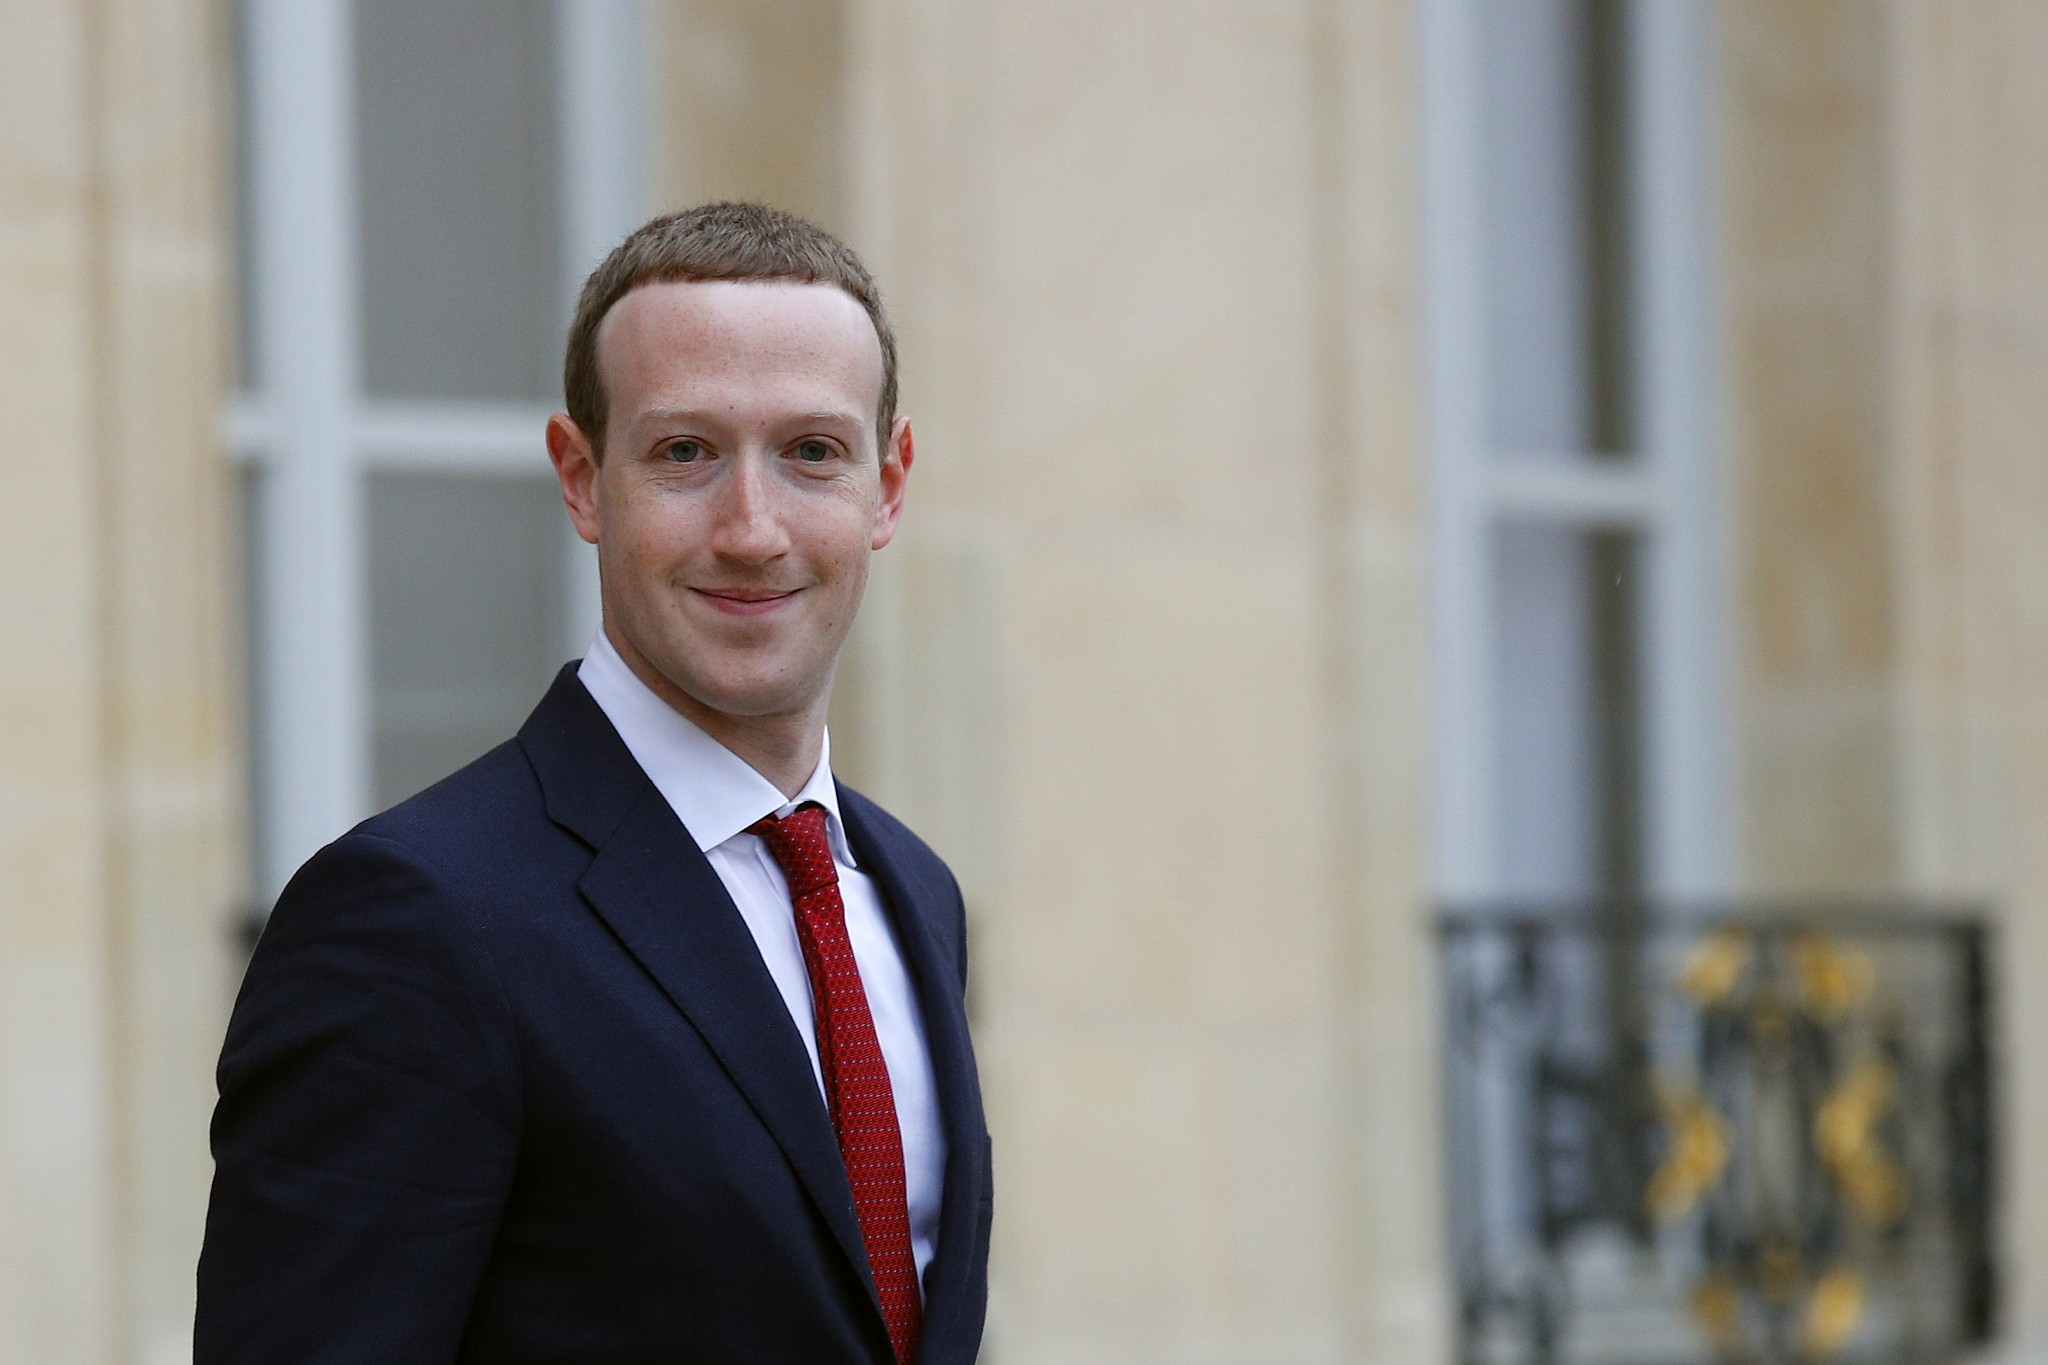 Deepfakes Pose Conundrum For Facebook Zuckerberg Says The Times Of Israel